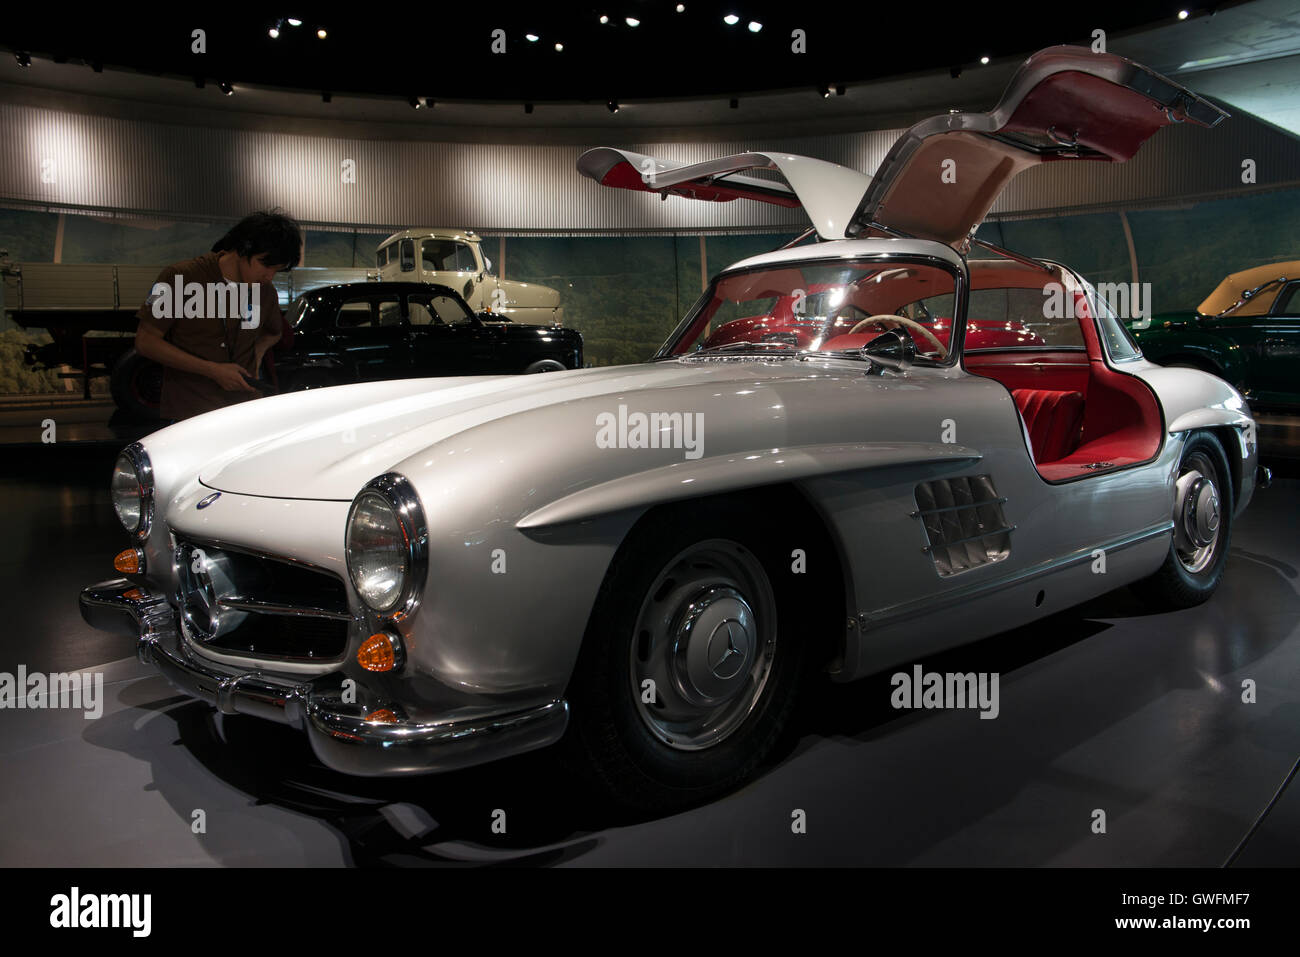 1955 mercedes benz 300 sl gullwing mercedes museum stuttgart stock photo royalty free image. Black Bedroom Furniture Sets. Home Design Ideas